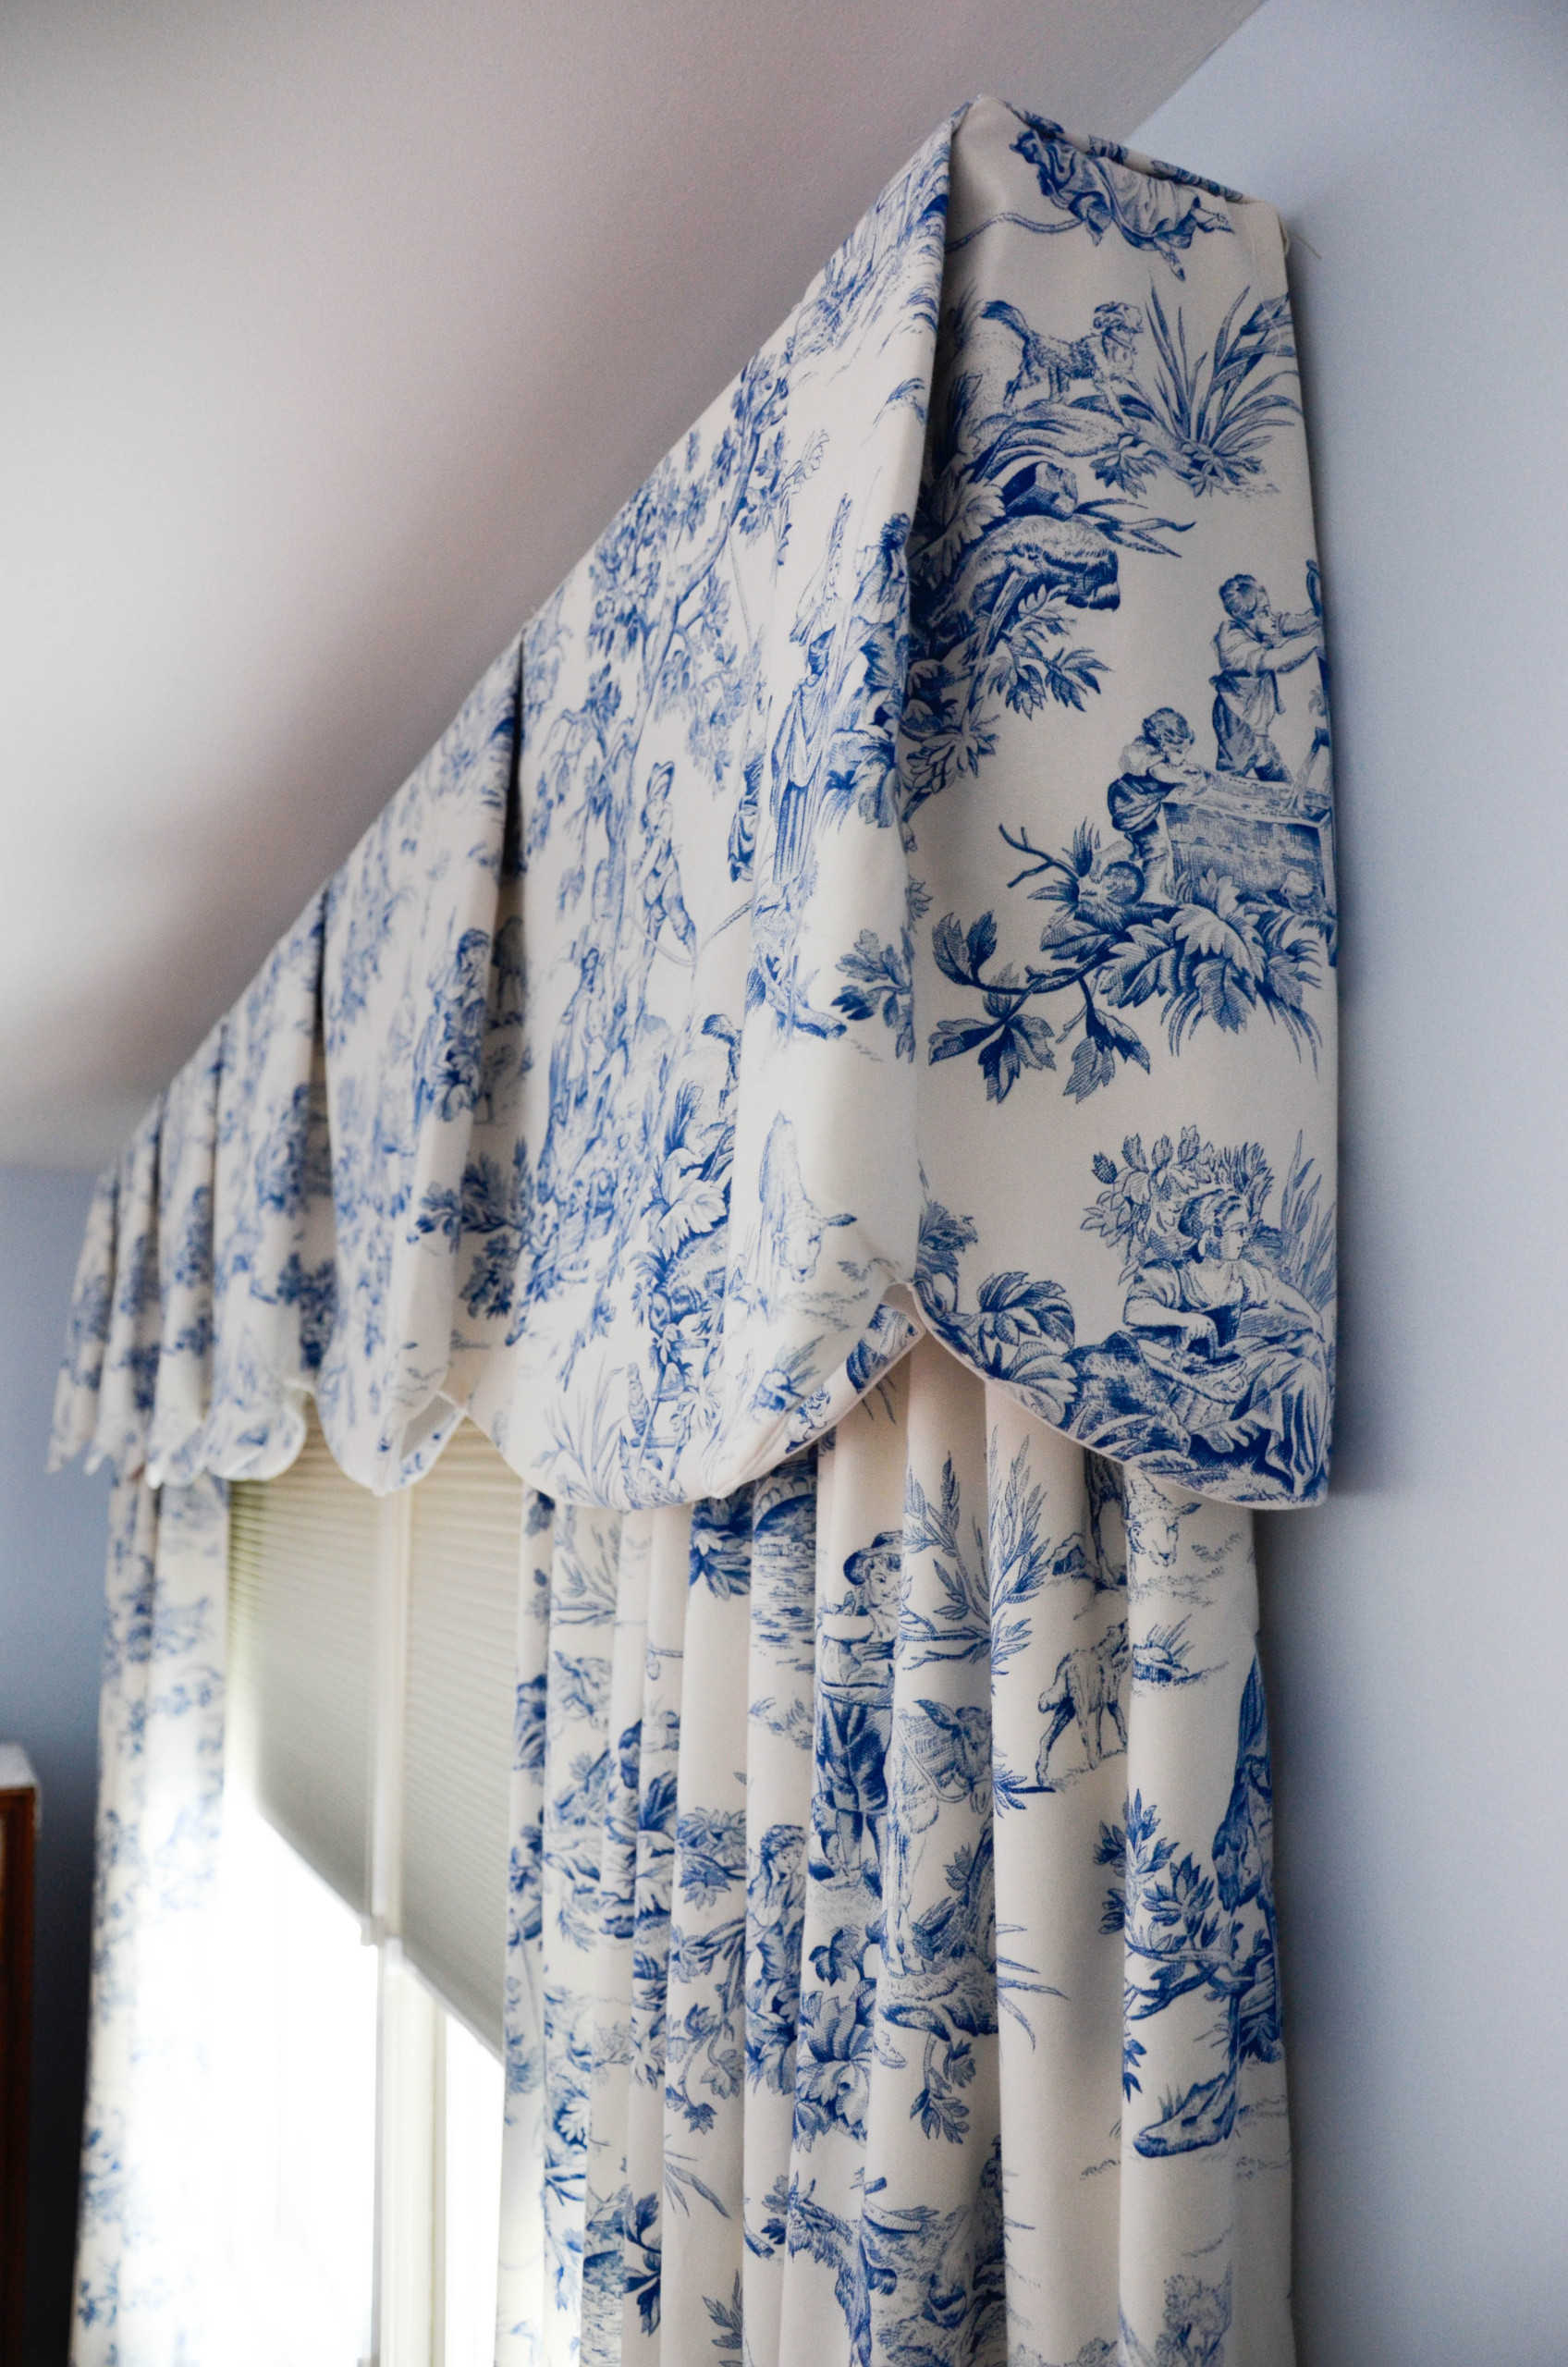 Blue and white toile Sheffield valances and draperies in a master bedroom